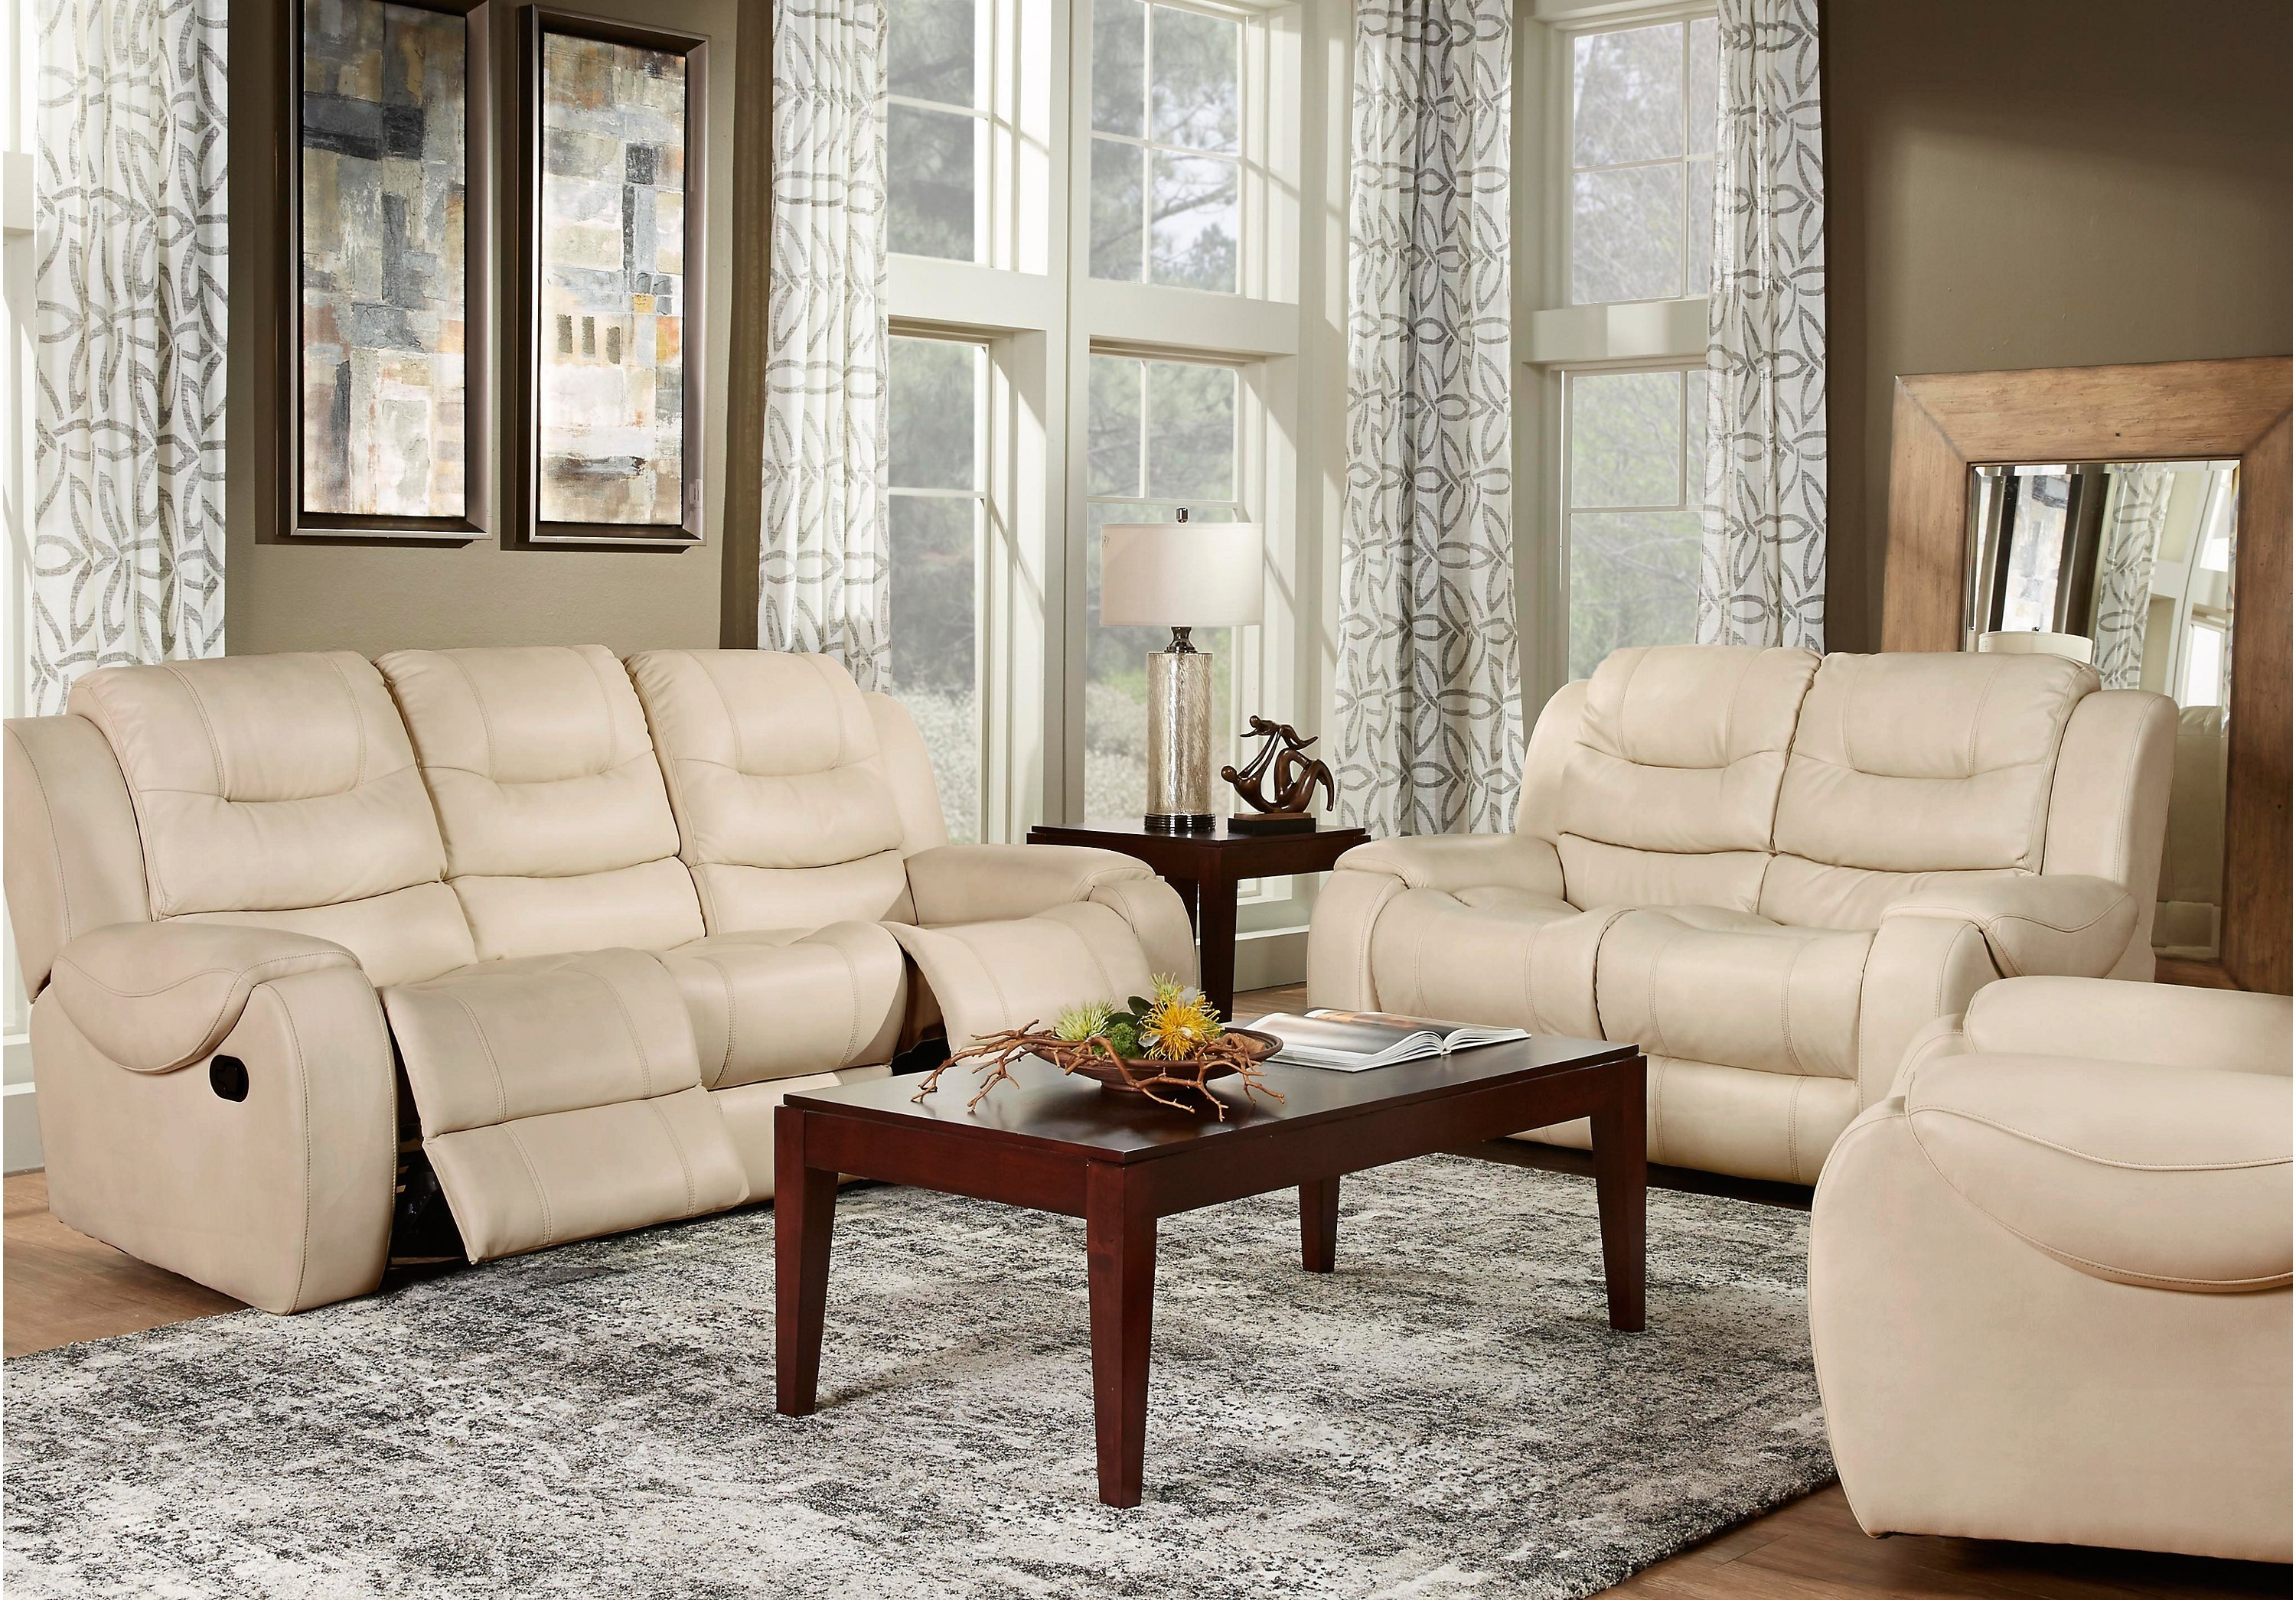 Popular Sectional Sofas At Rooms To Go For Baycliffe Living Room Set Rooms To Go Furniture Luxuriously Supple (View 13 of 15)